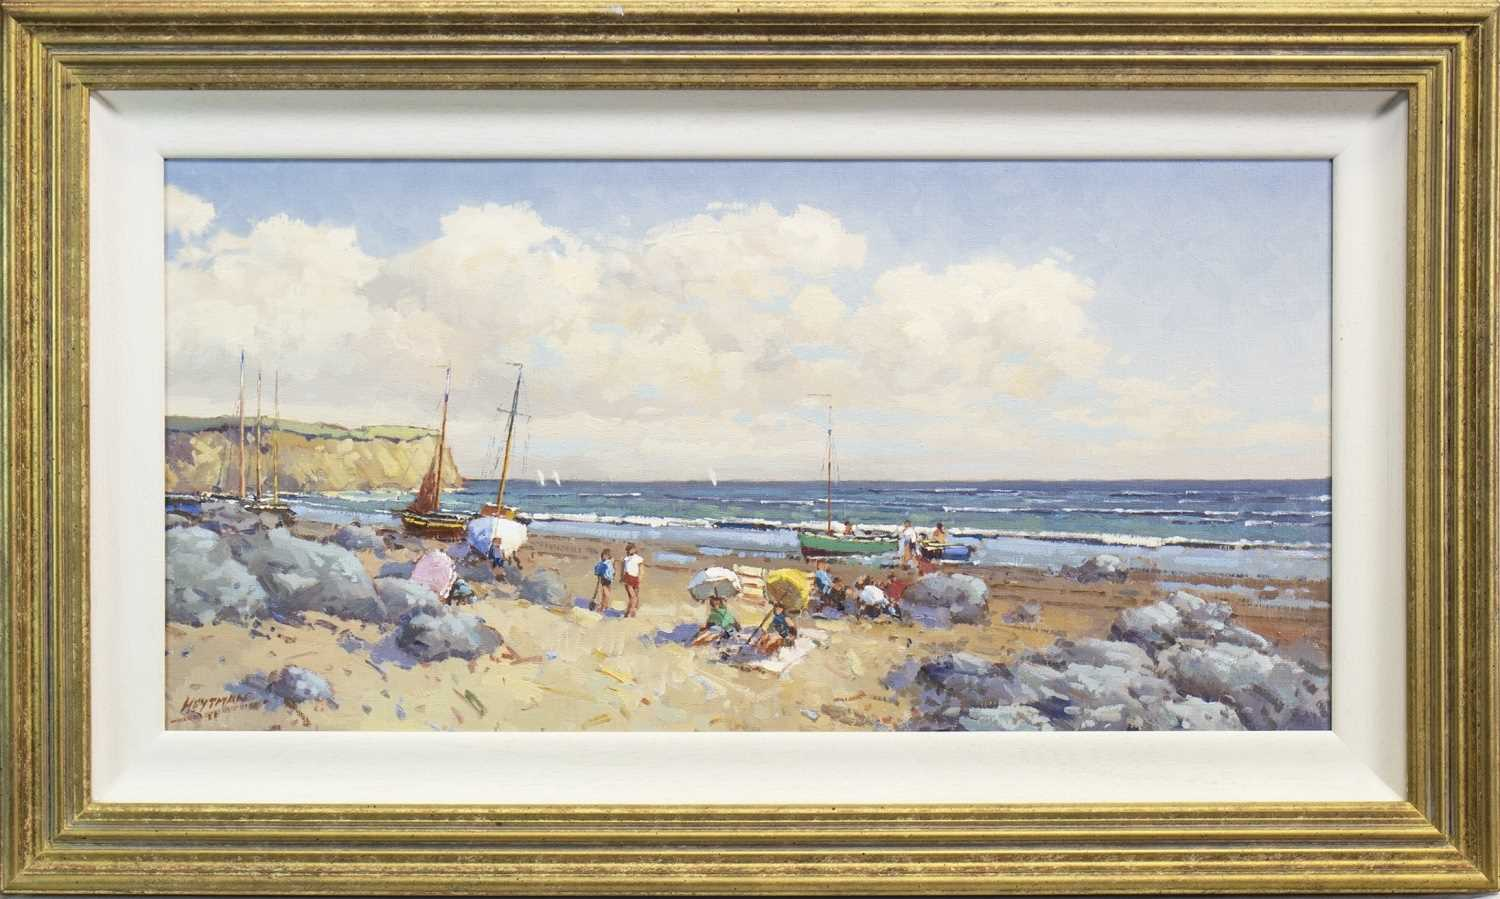 Lot 594-COASTAL SCENE WITH FIGURES AND BOATS, AN OIL BY WILLIAM HEYTMAN